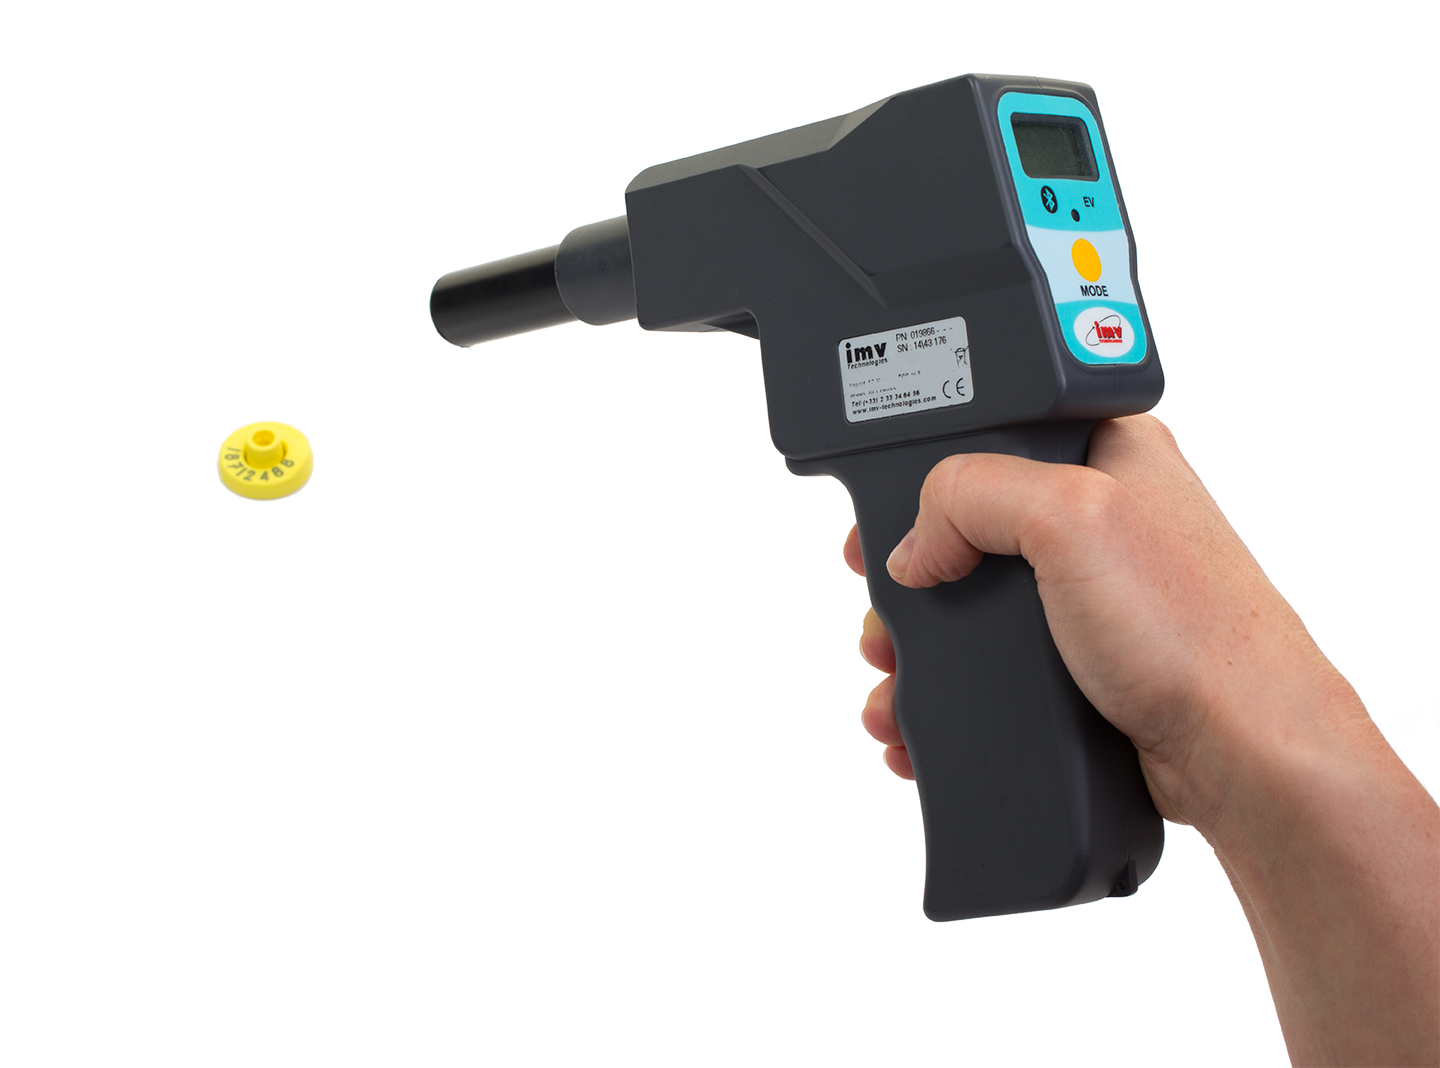 photo Chip reading gun with holster